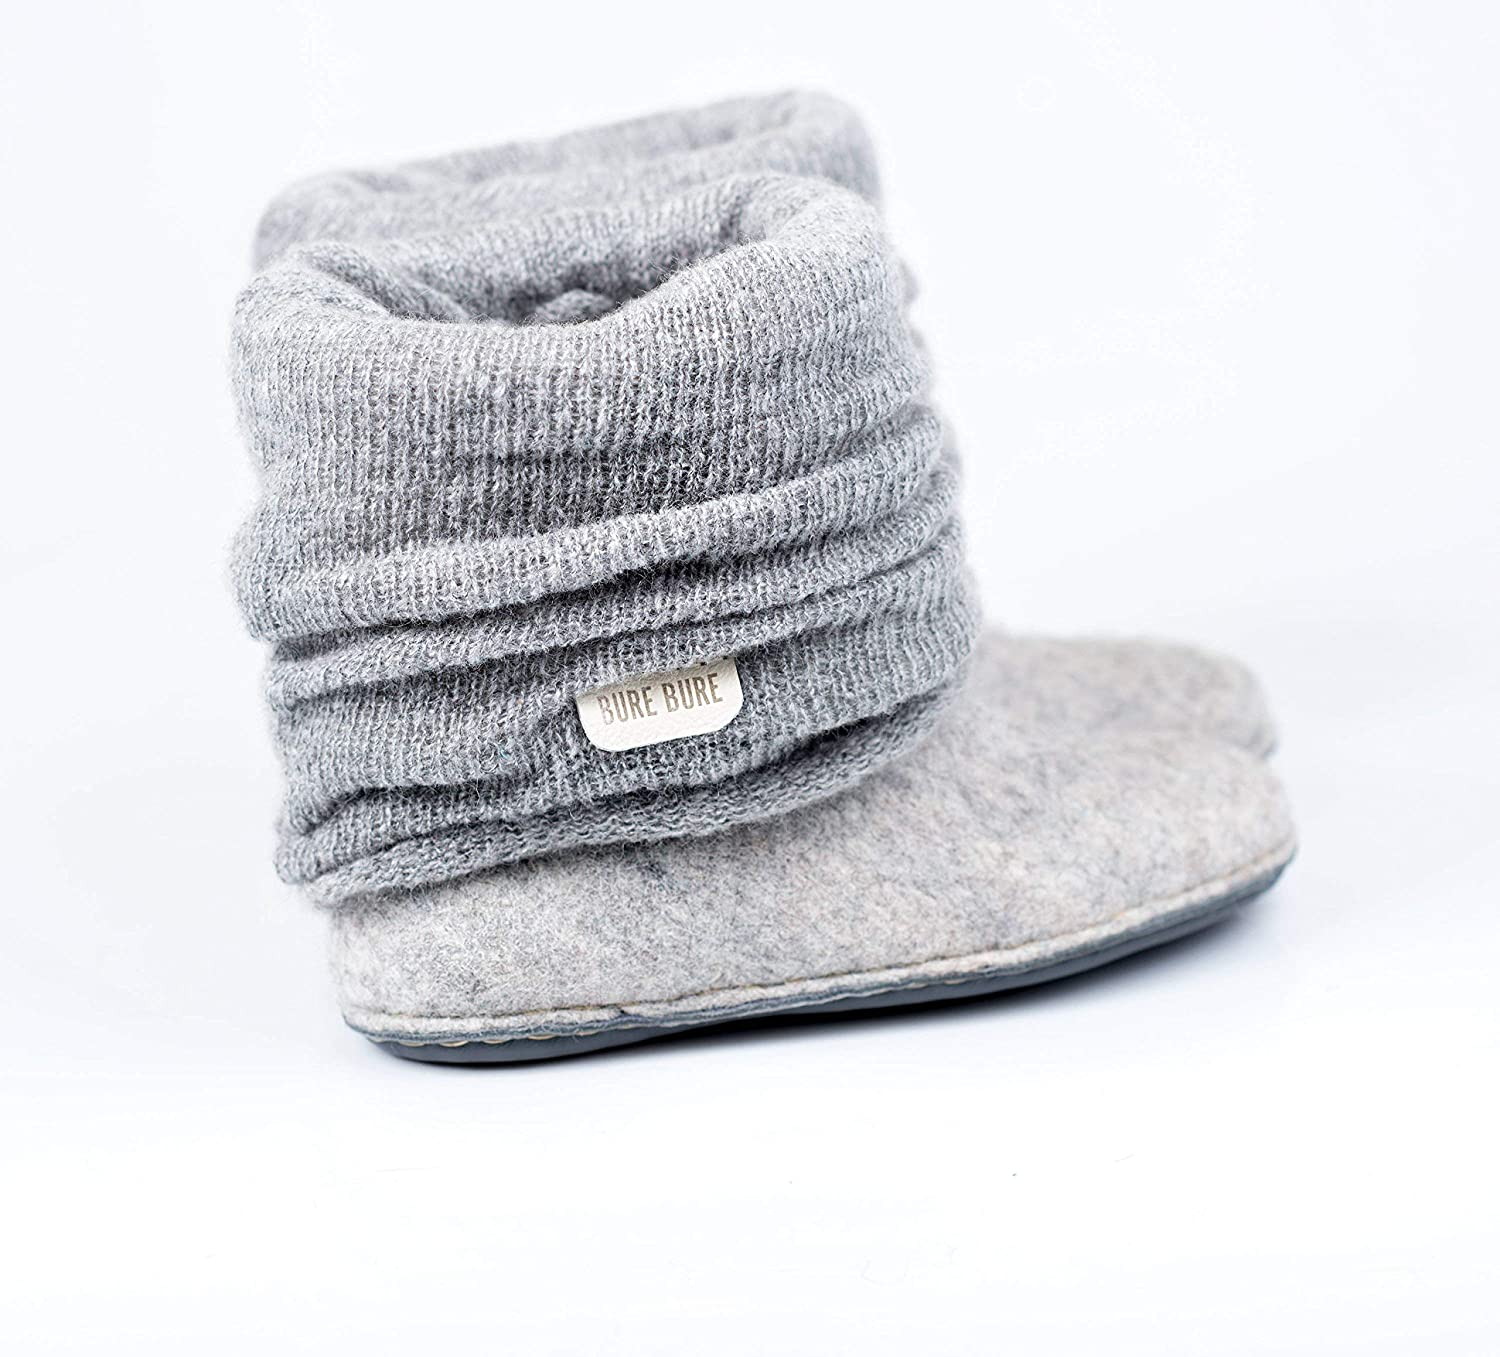 Handmade gray ankle boots for women with alpaca wool and knitted leg warmers